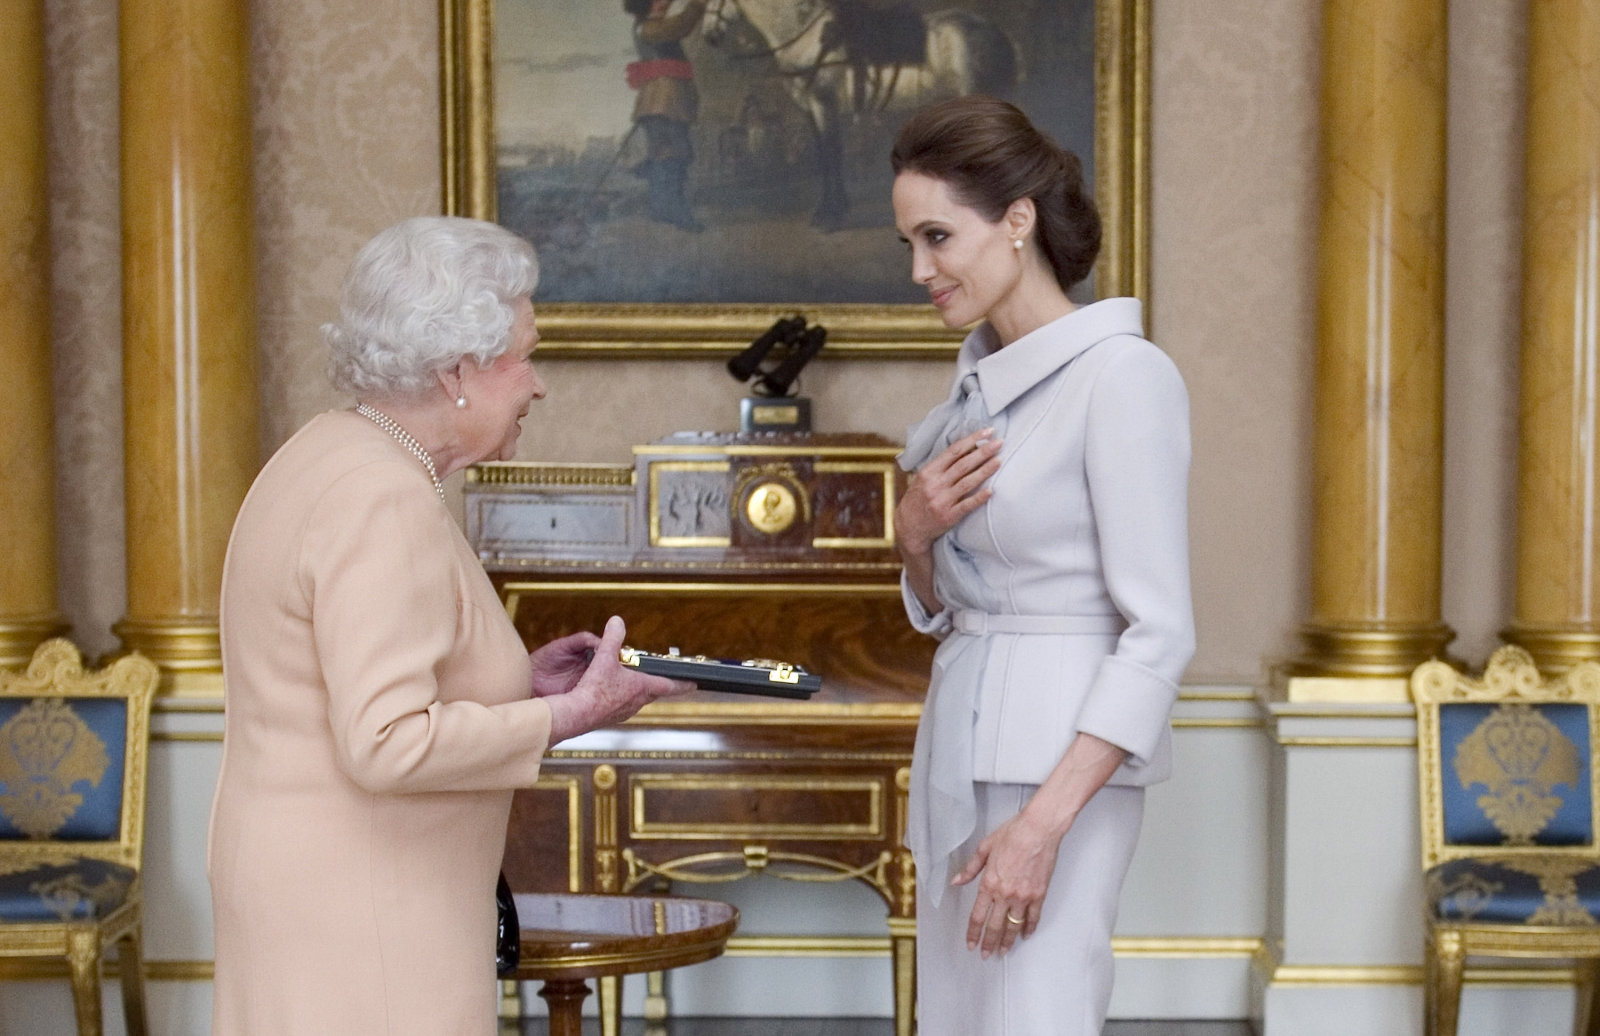 Angelina Jolie receiving a damehood in 2014